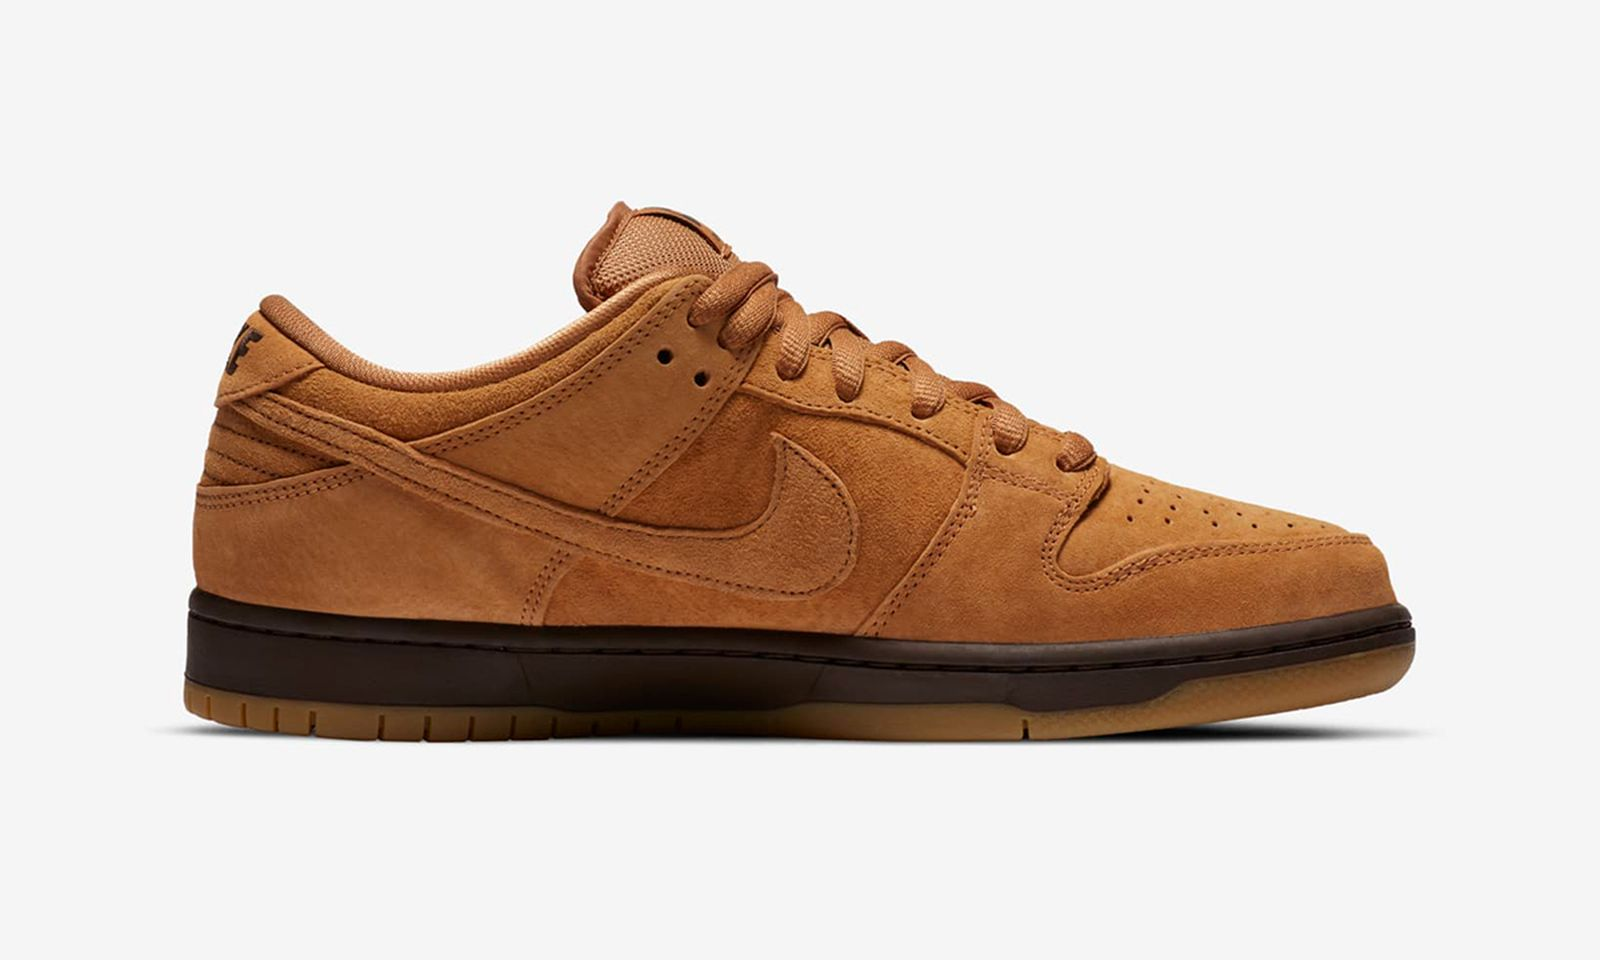 nike-sb-dunk-low-wheat-release-date-price-new-01